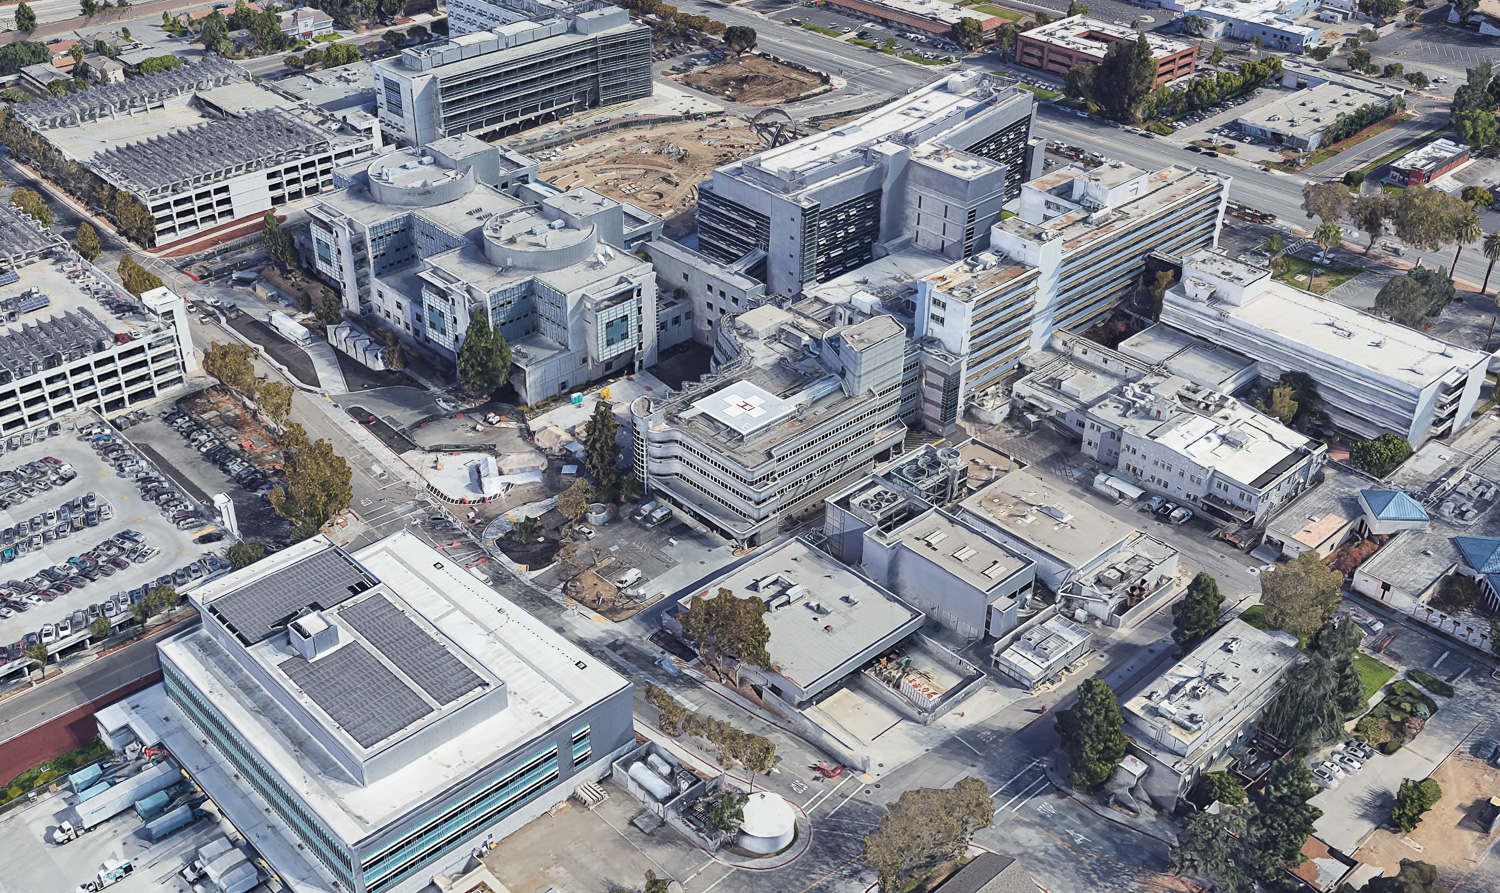 Existing structure on future site of the Behavior Health Services Building, image via Google Satellite